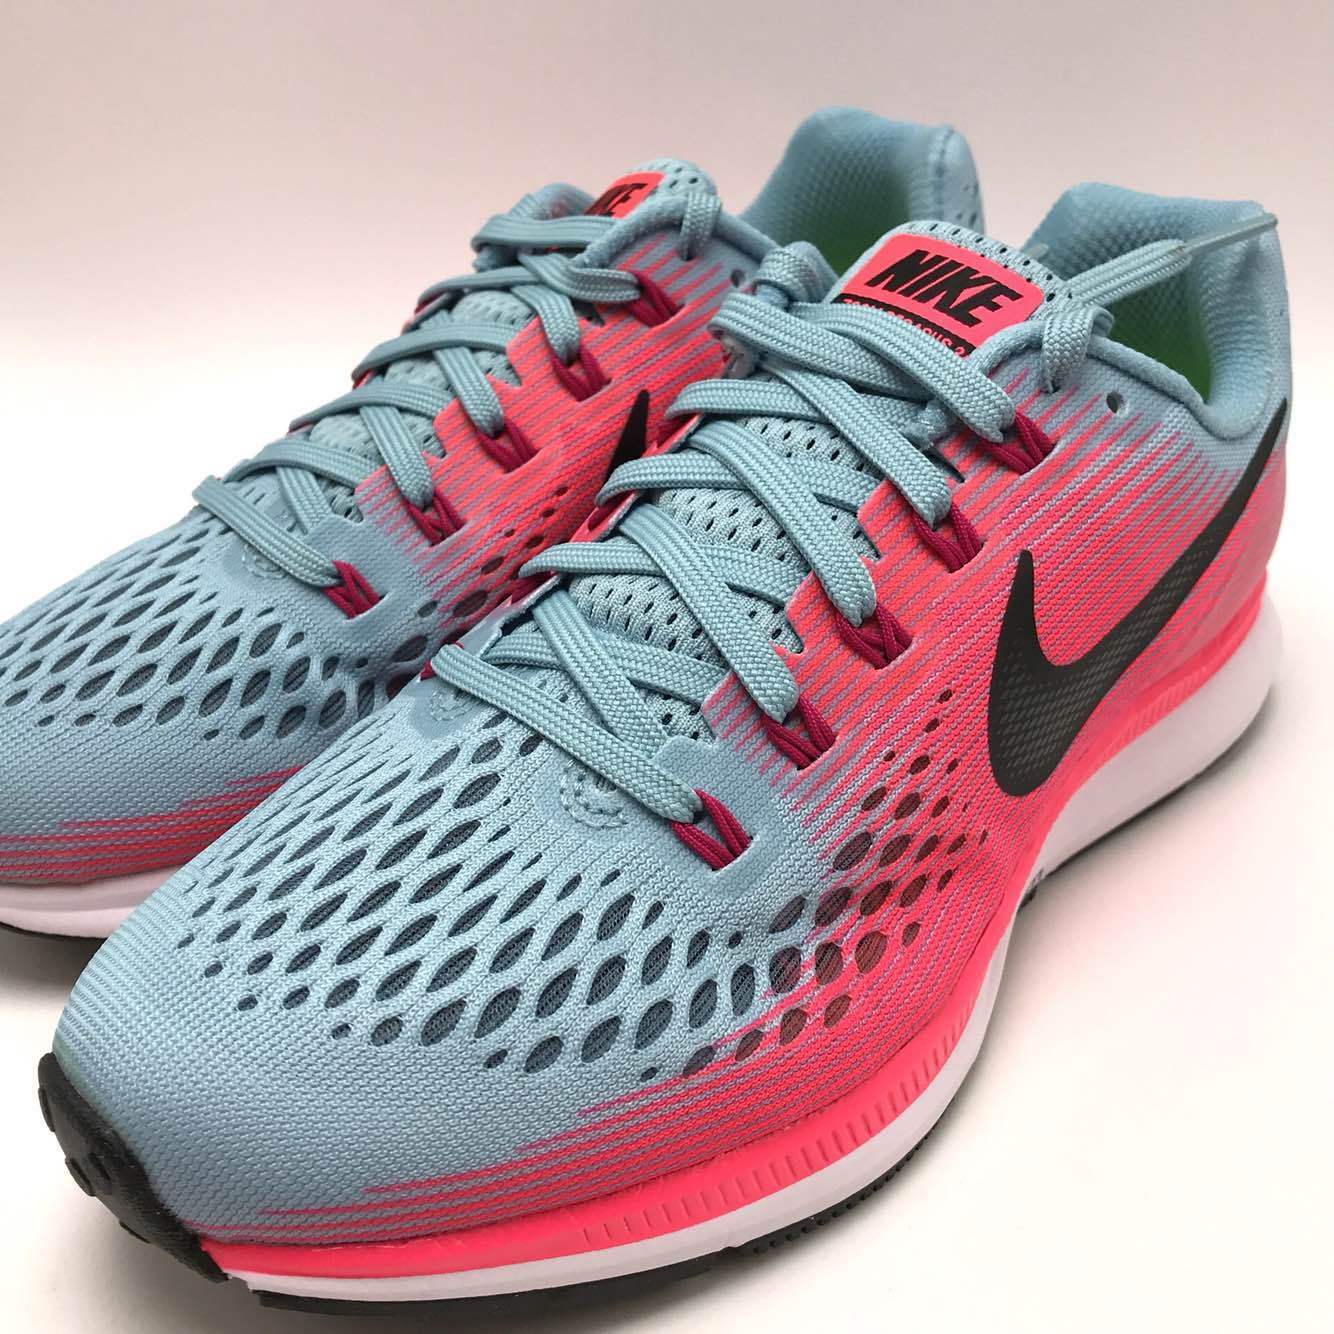 Nike Air Zoom Pegasus 34 W Women's Running Mica Blue/White-Racer Pink 880561-406 The most popular shoes for men and women